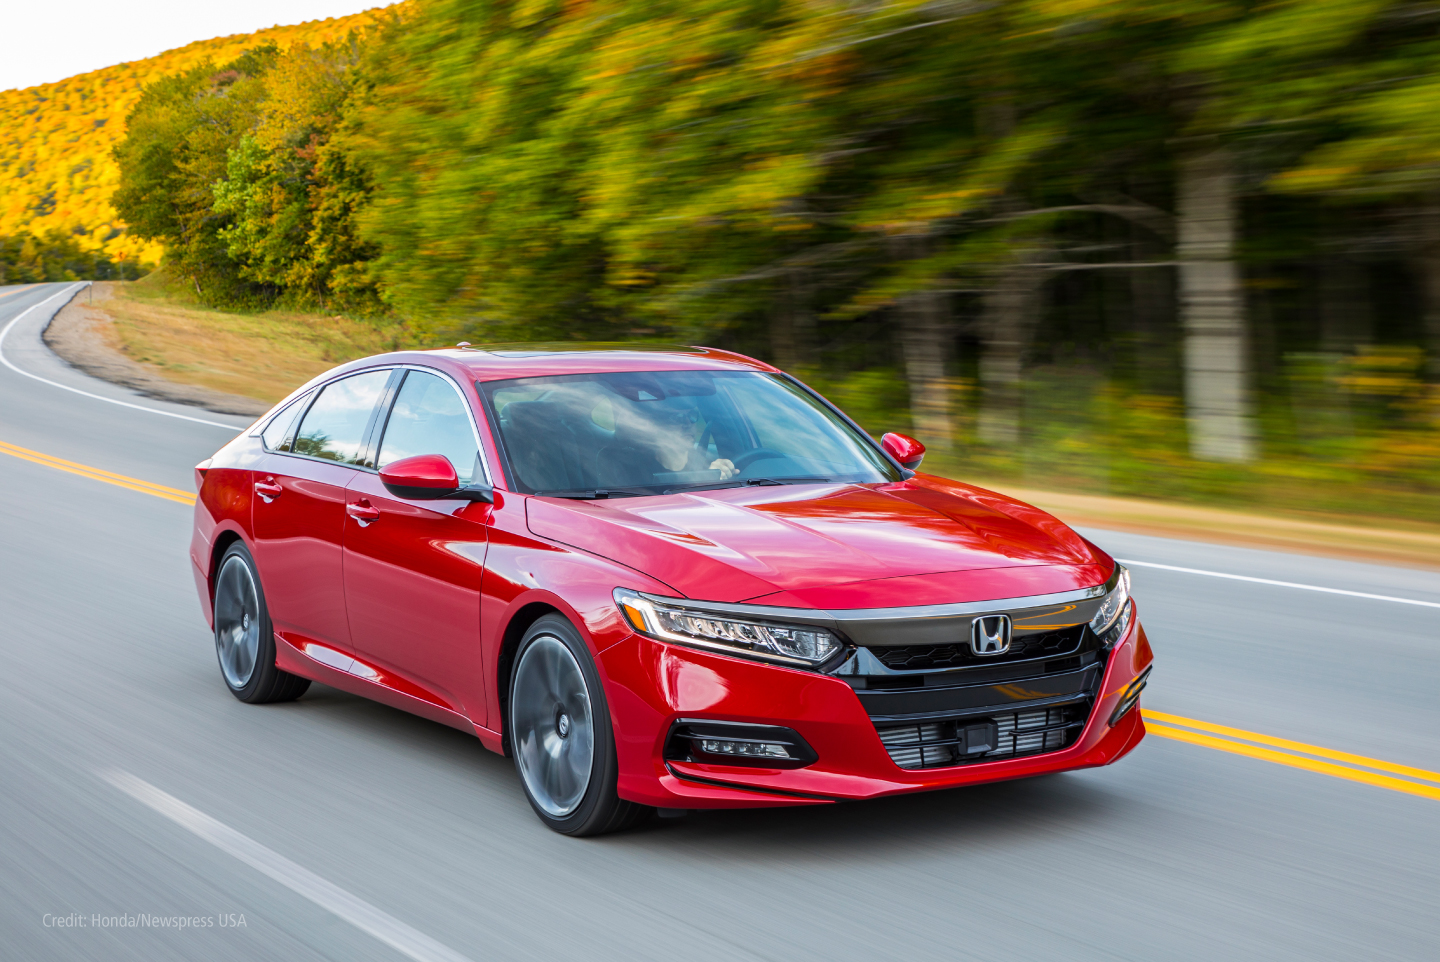 Choicest cars of 2019 named by Edmunds | RoadLoans